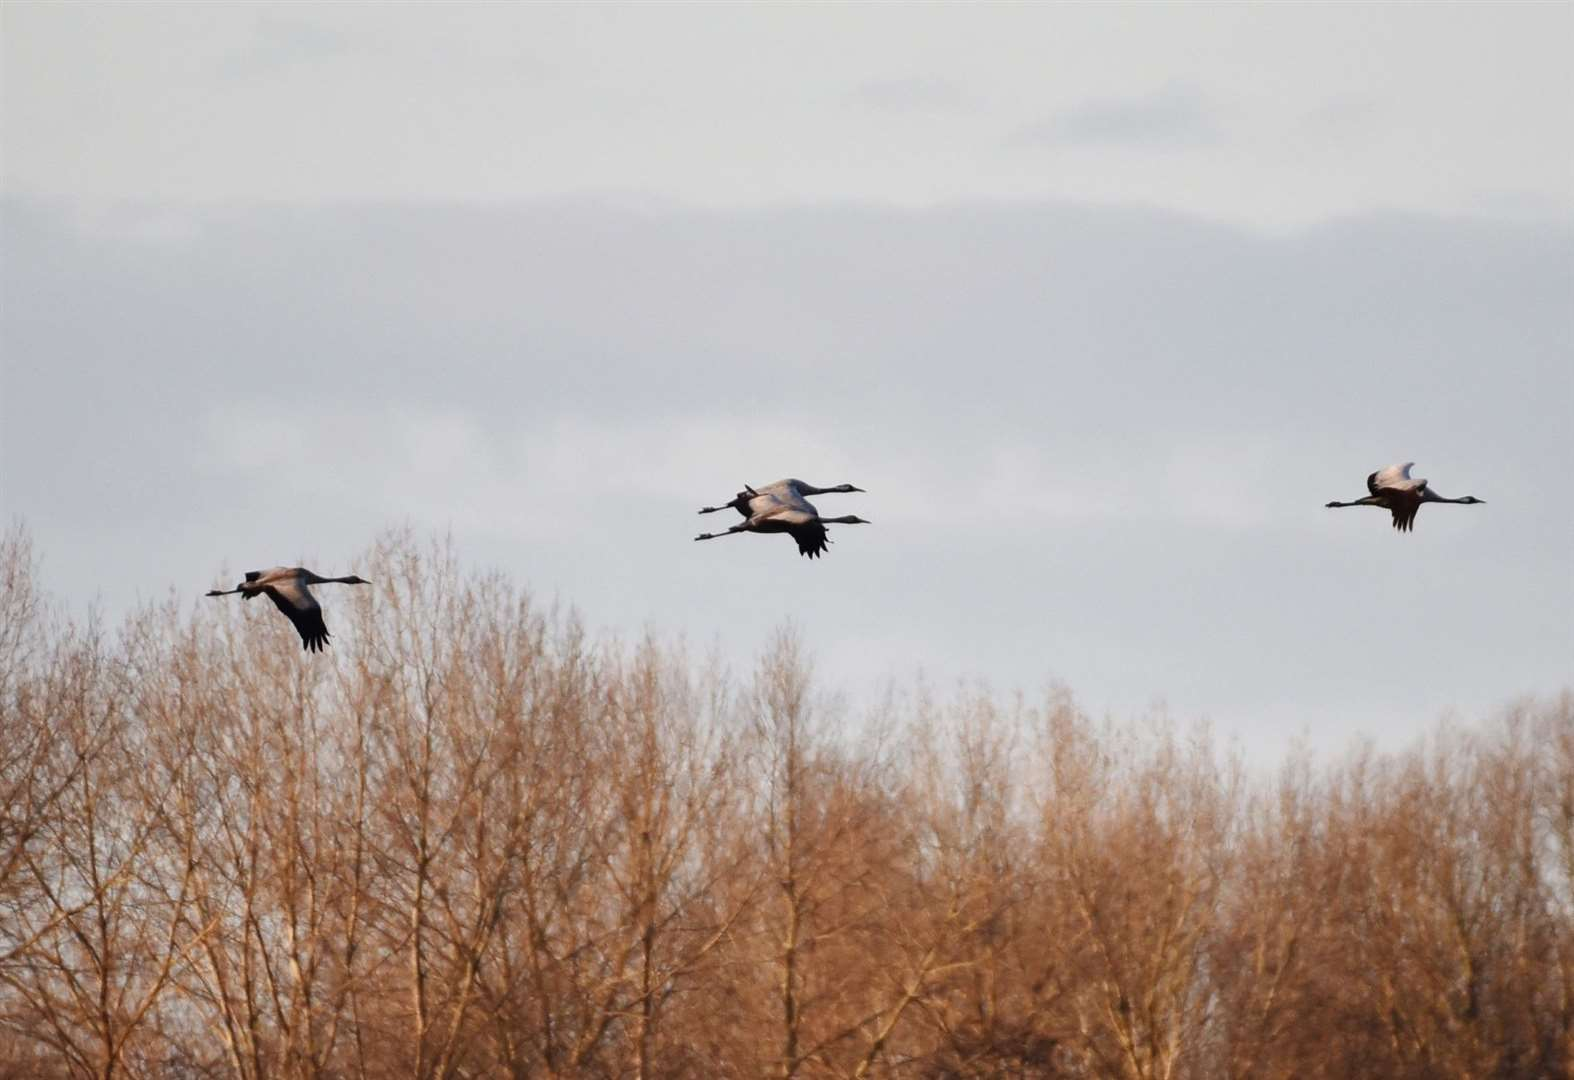 Culture: Nature stirs as spring beckons at RSPB Lakenheath Fen